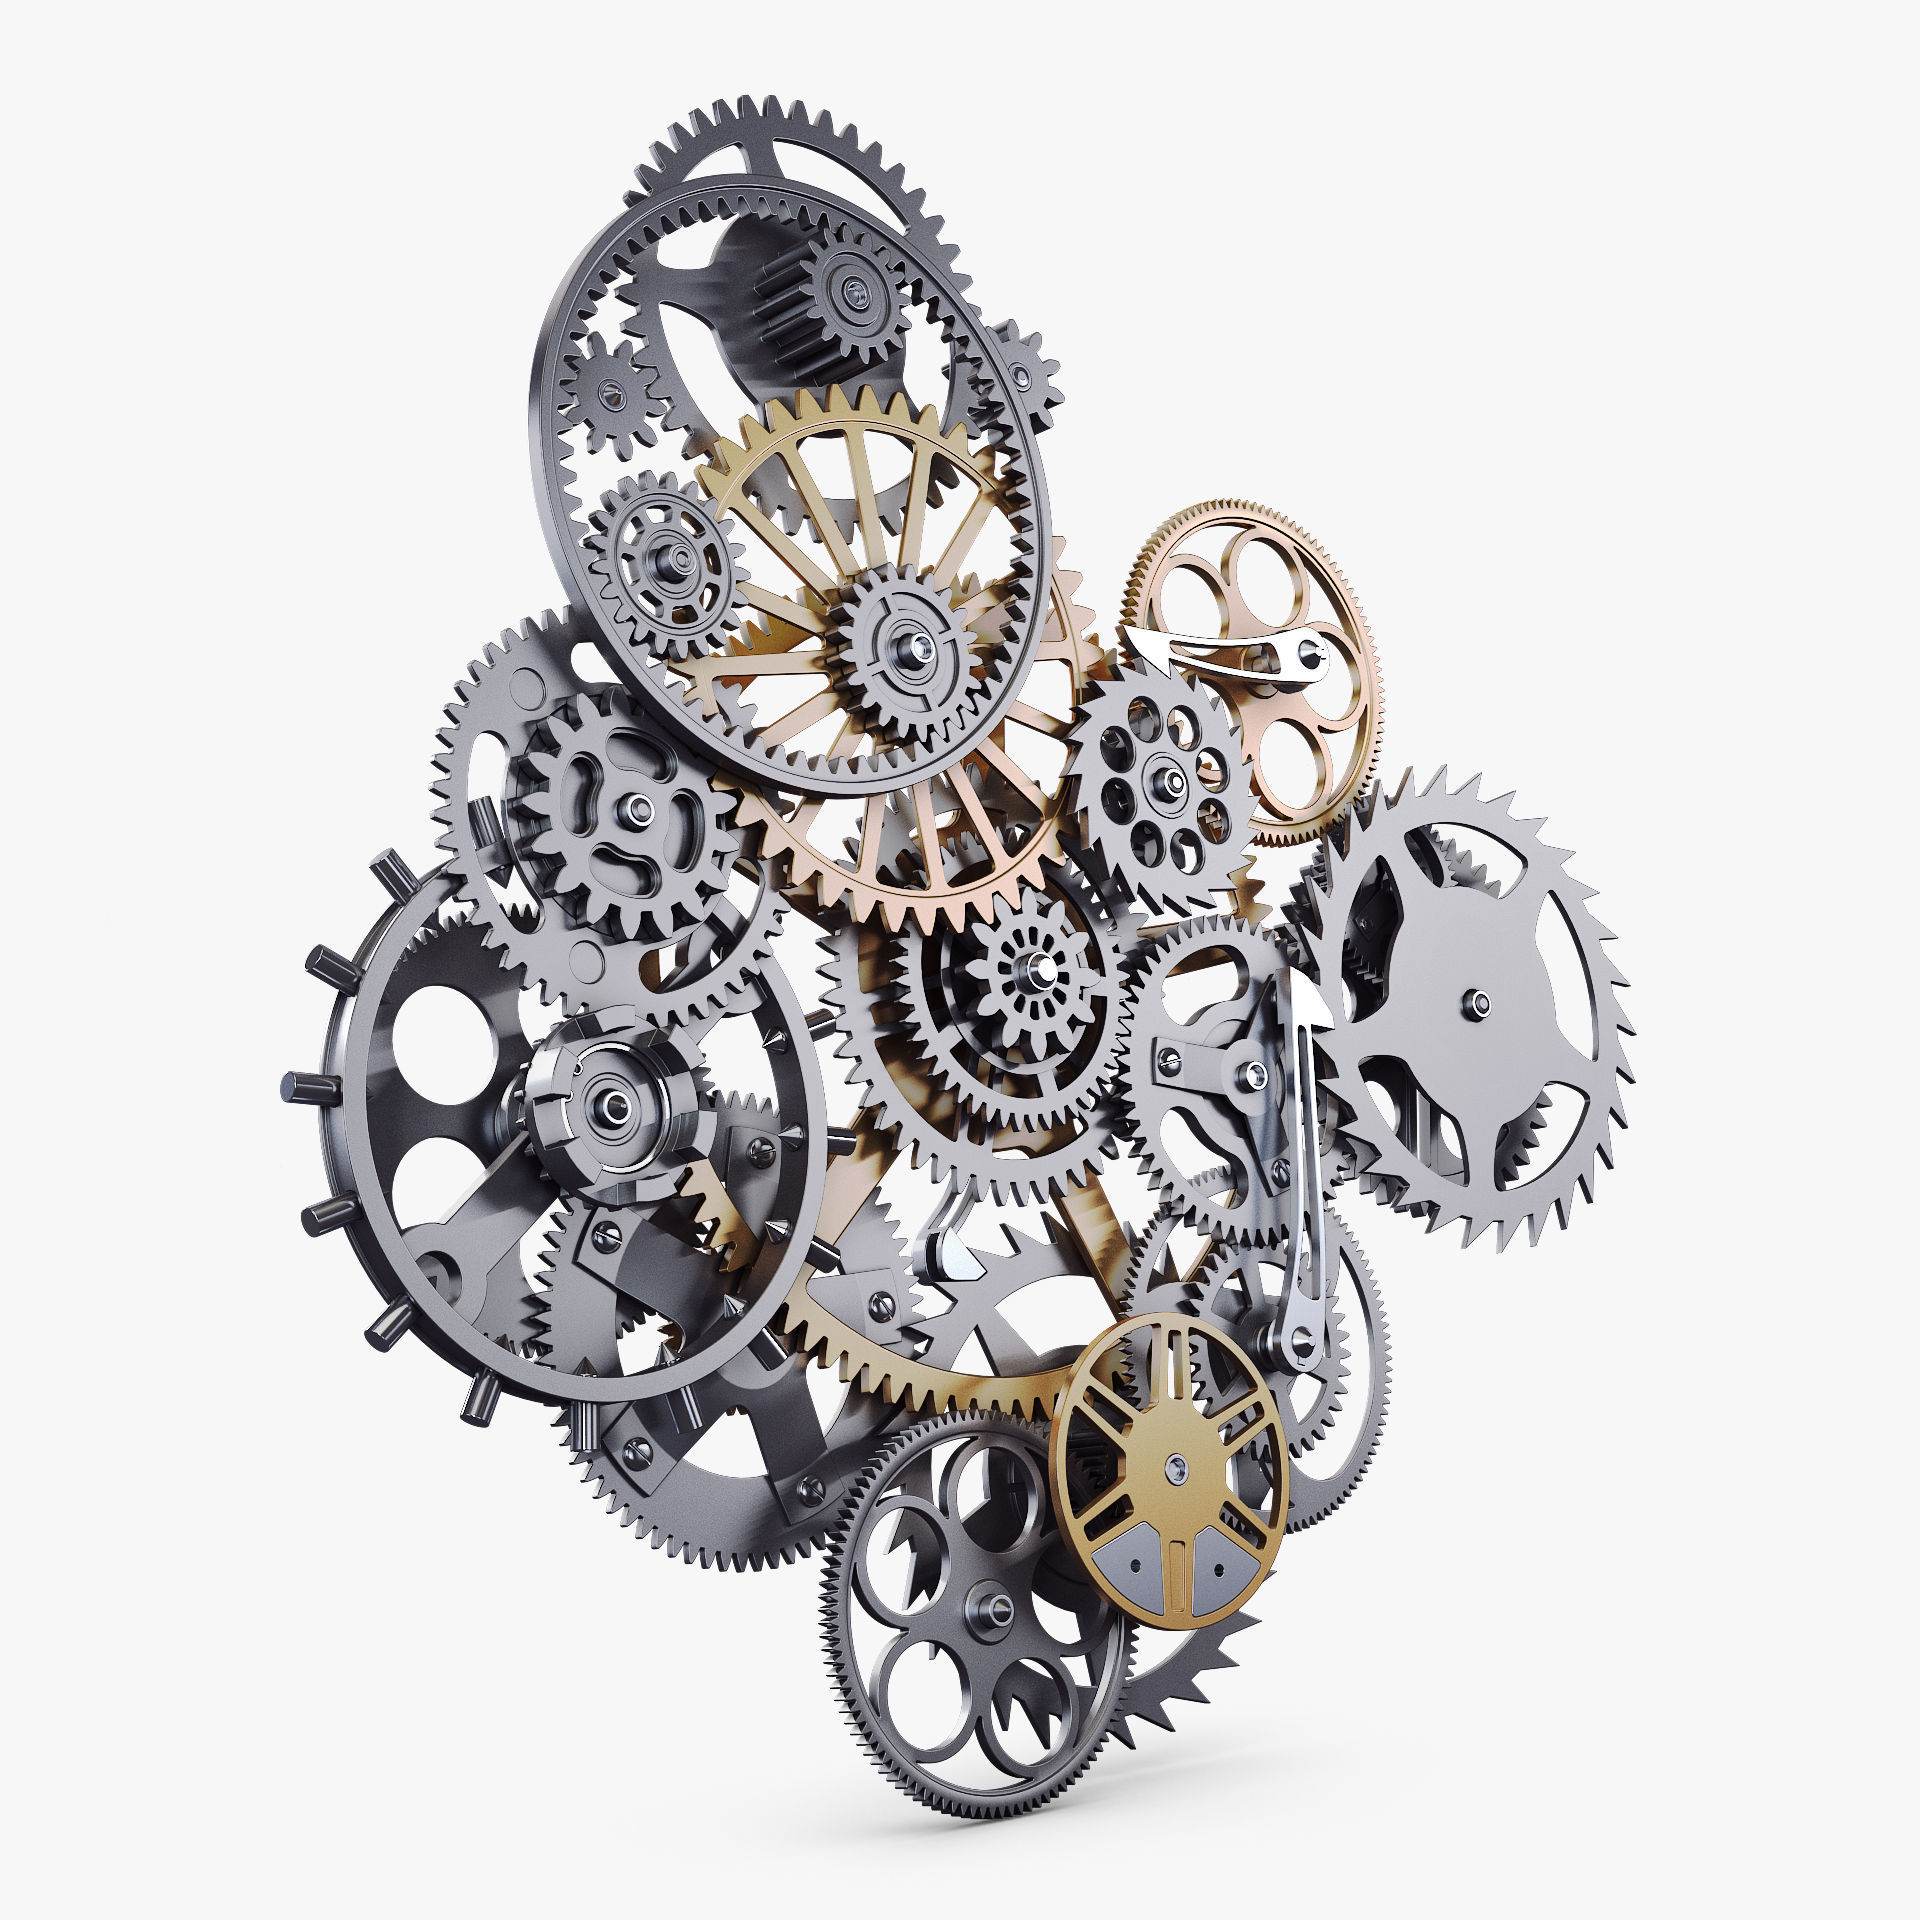 Gear Mechanism v 9